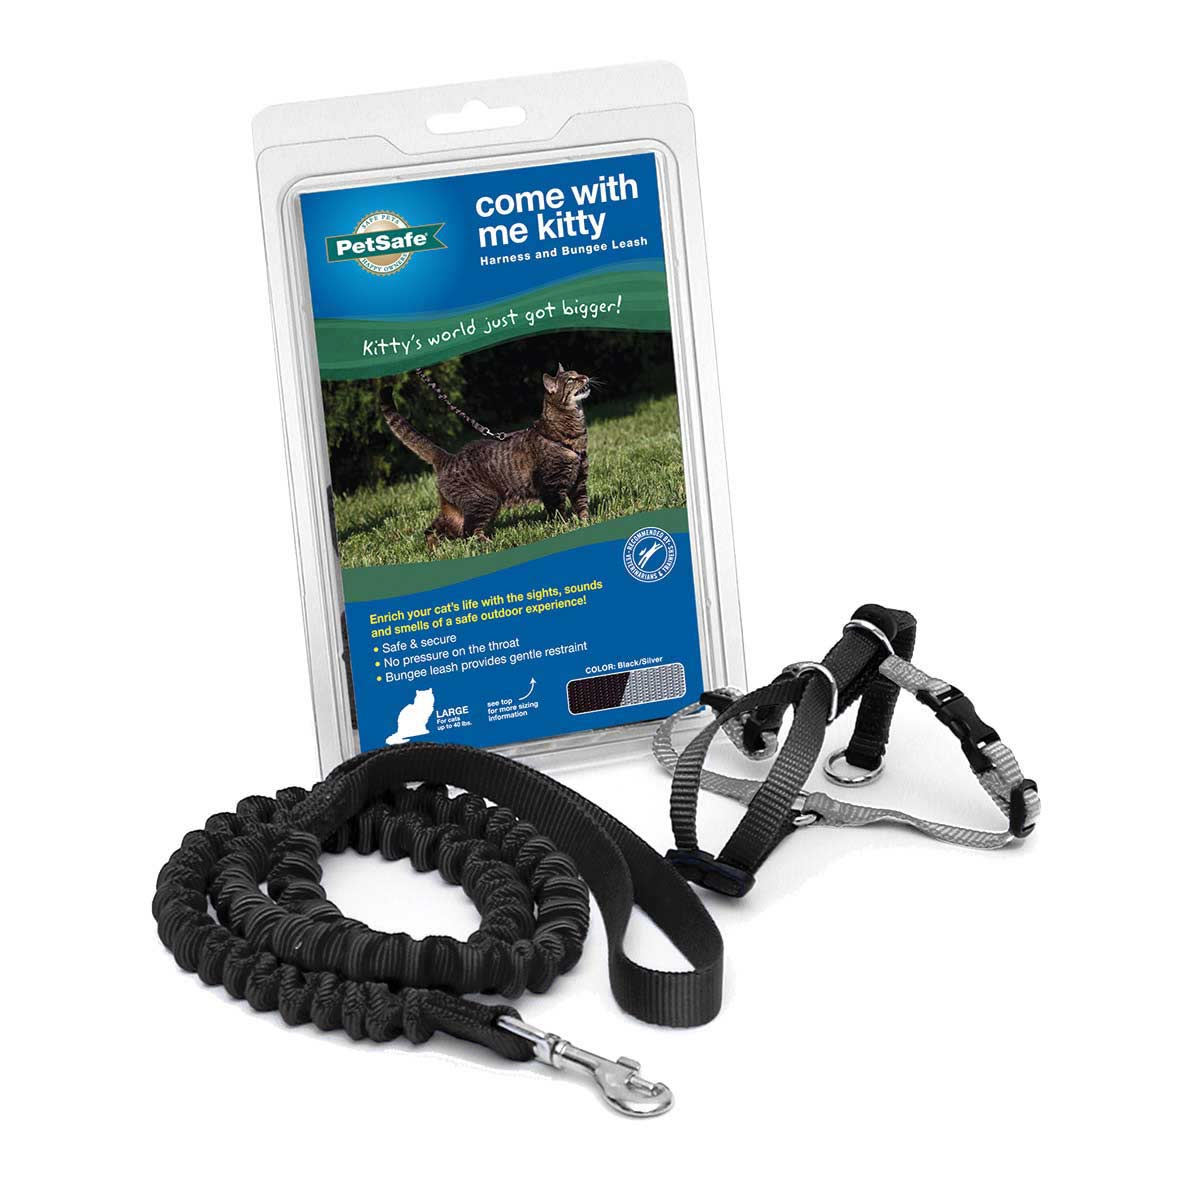 PetSafe Come With Me Large Black Kitty Harness and Bungee Leash 13 inches - 18 inches